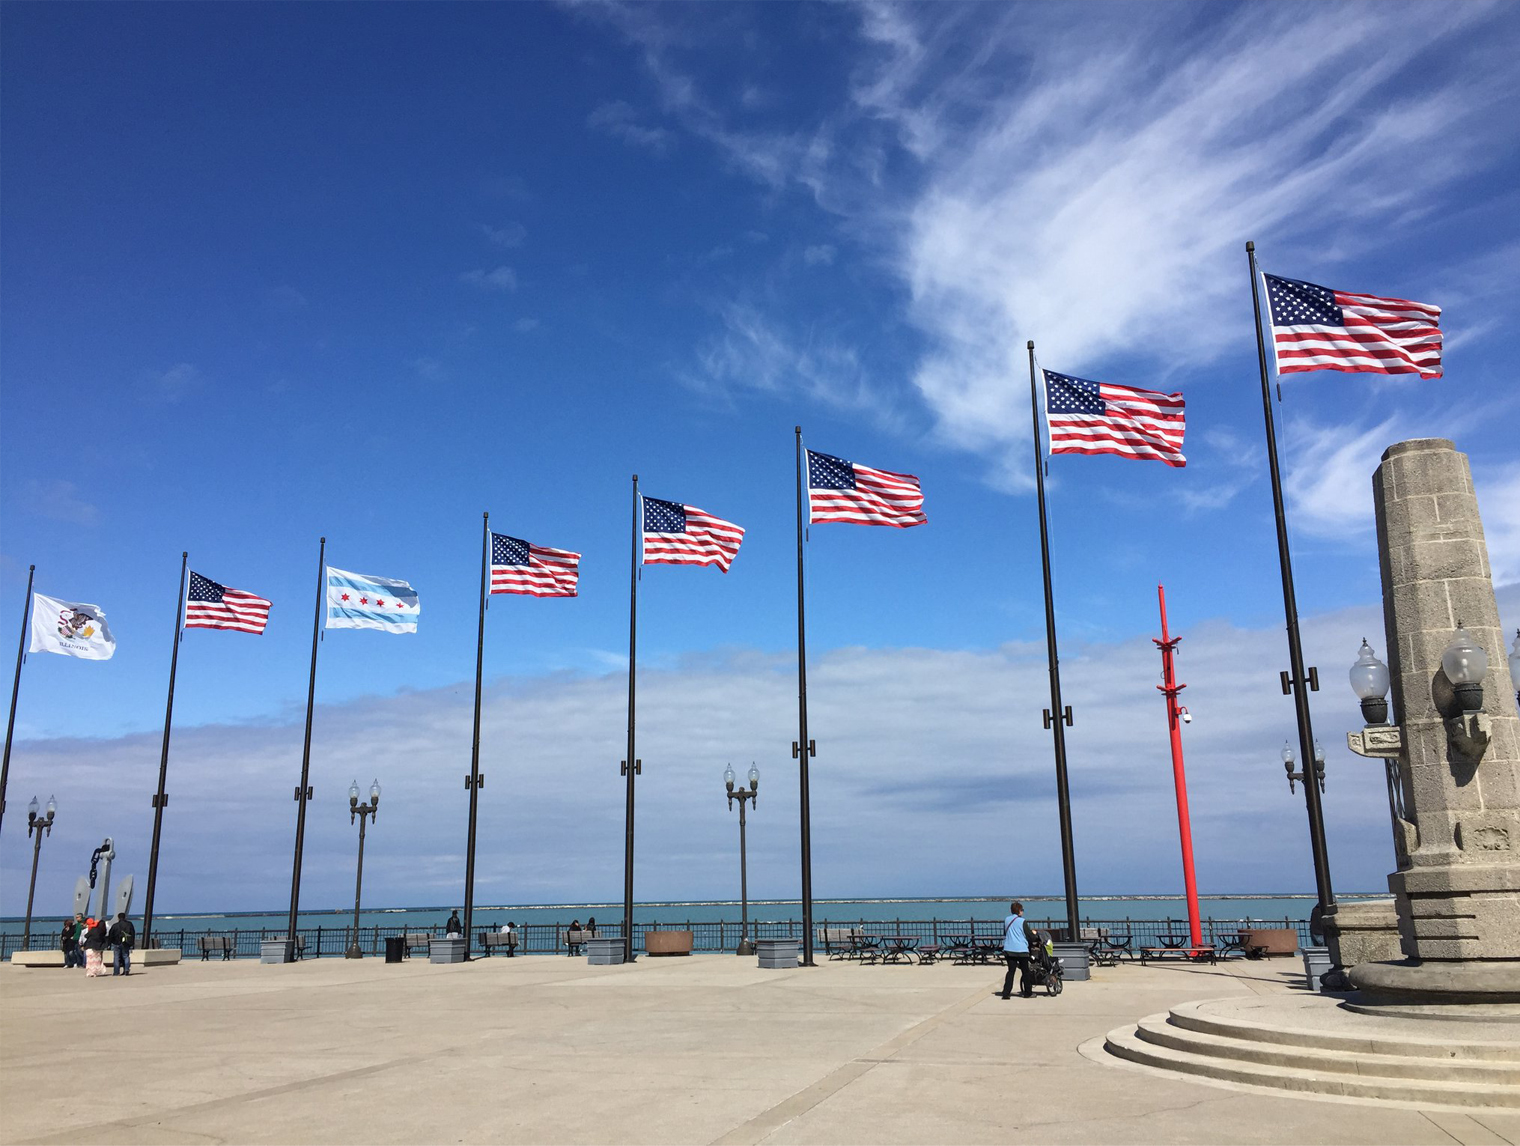 Flags on the Chicago Pier by Antonio Alcala